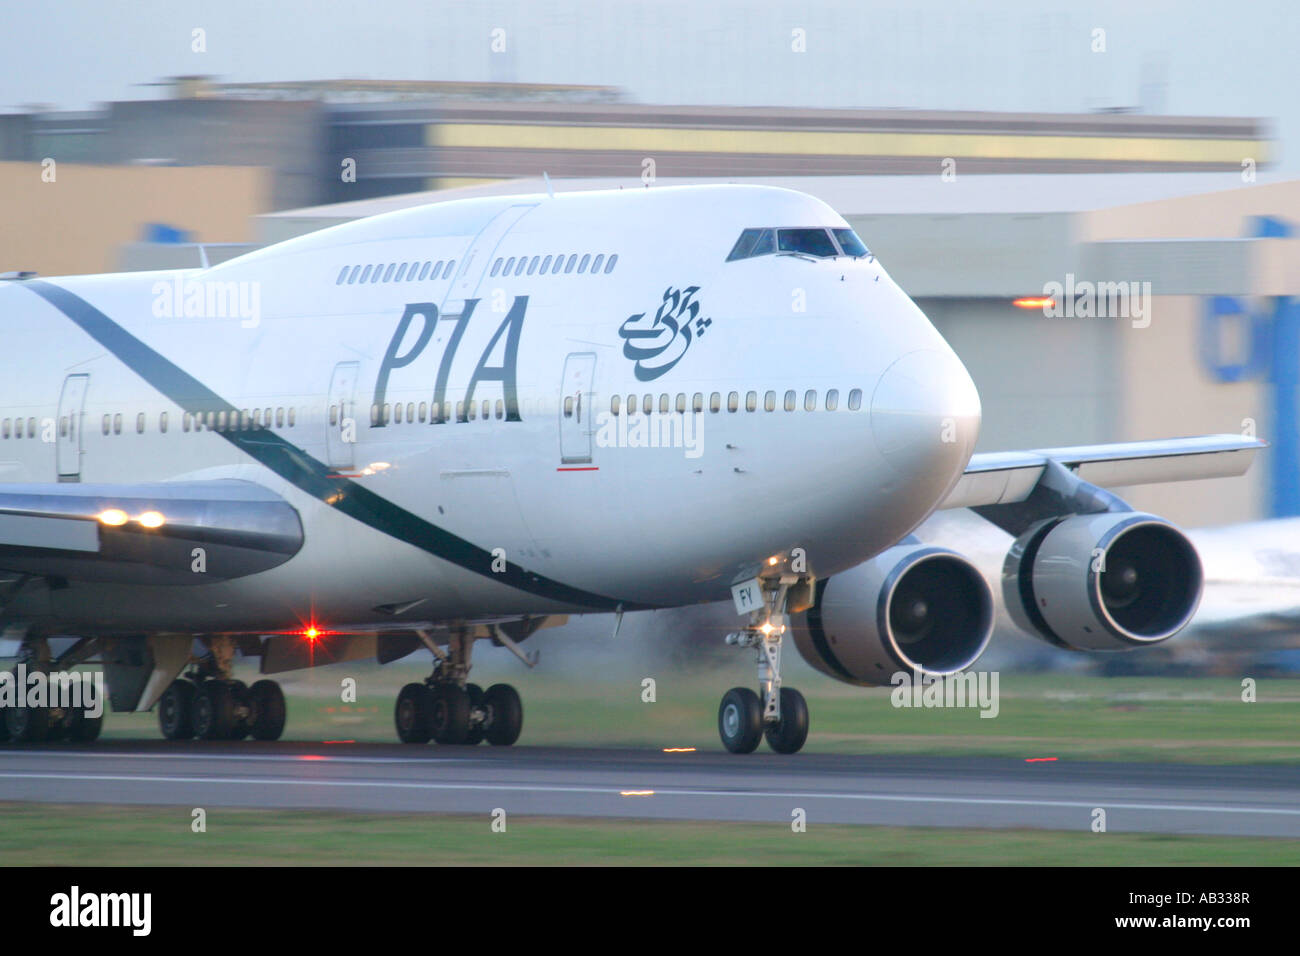 Close up of Pakistan International Airlines PIA Boeing 747 just after landing at London Heathrow Airport UK - Stock Image